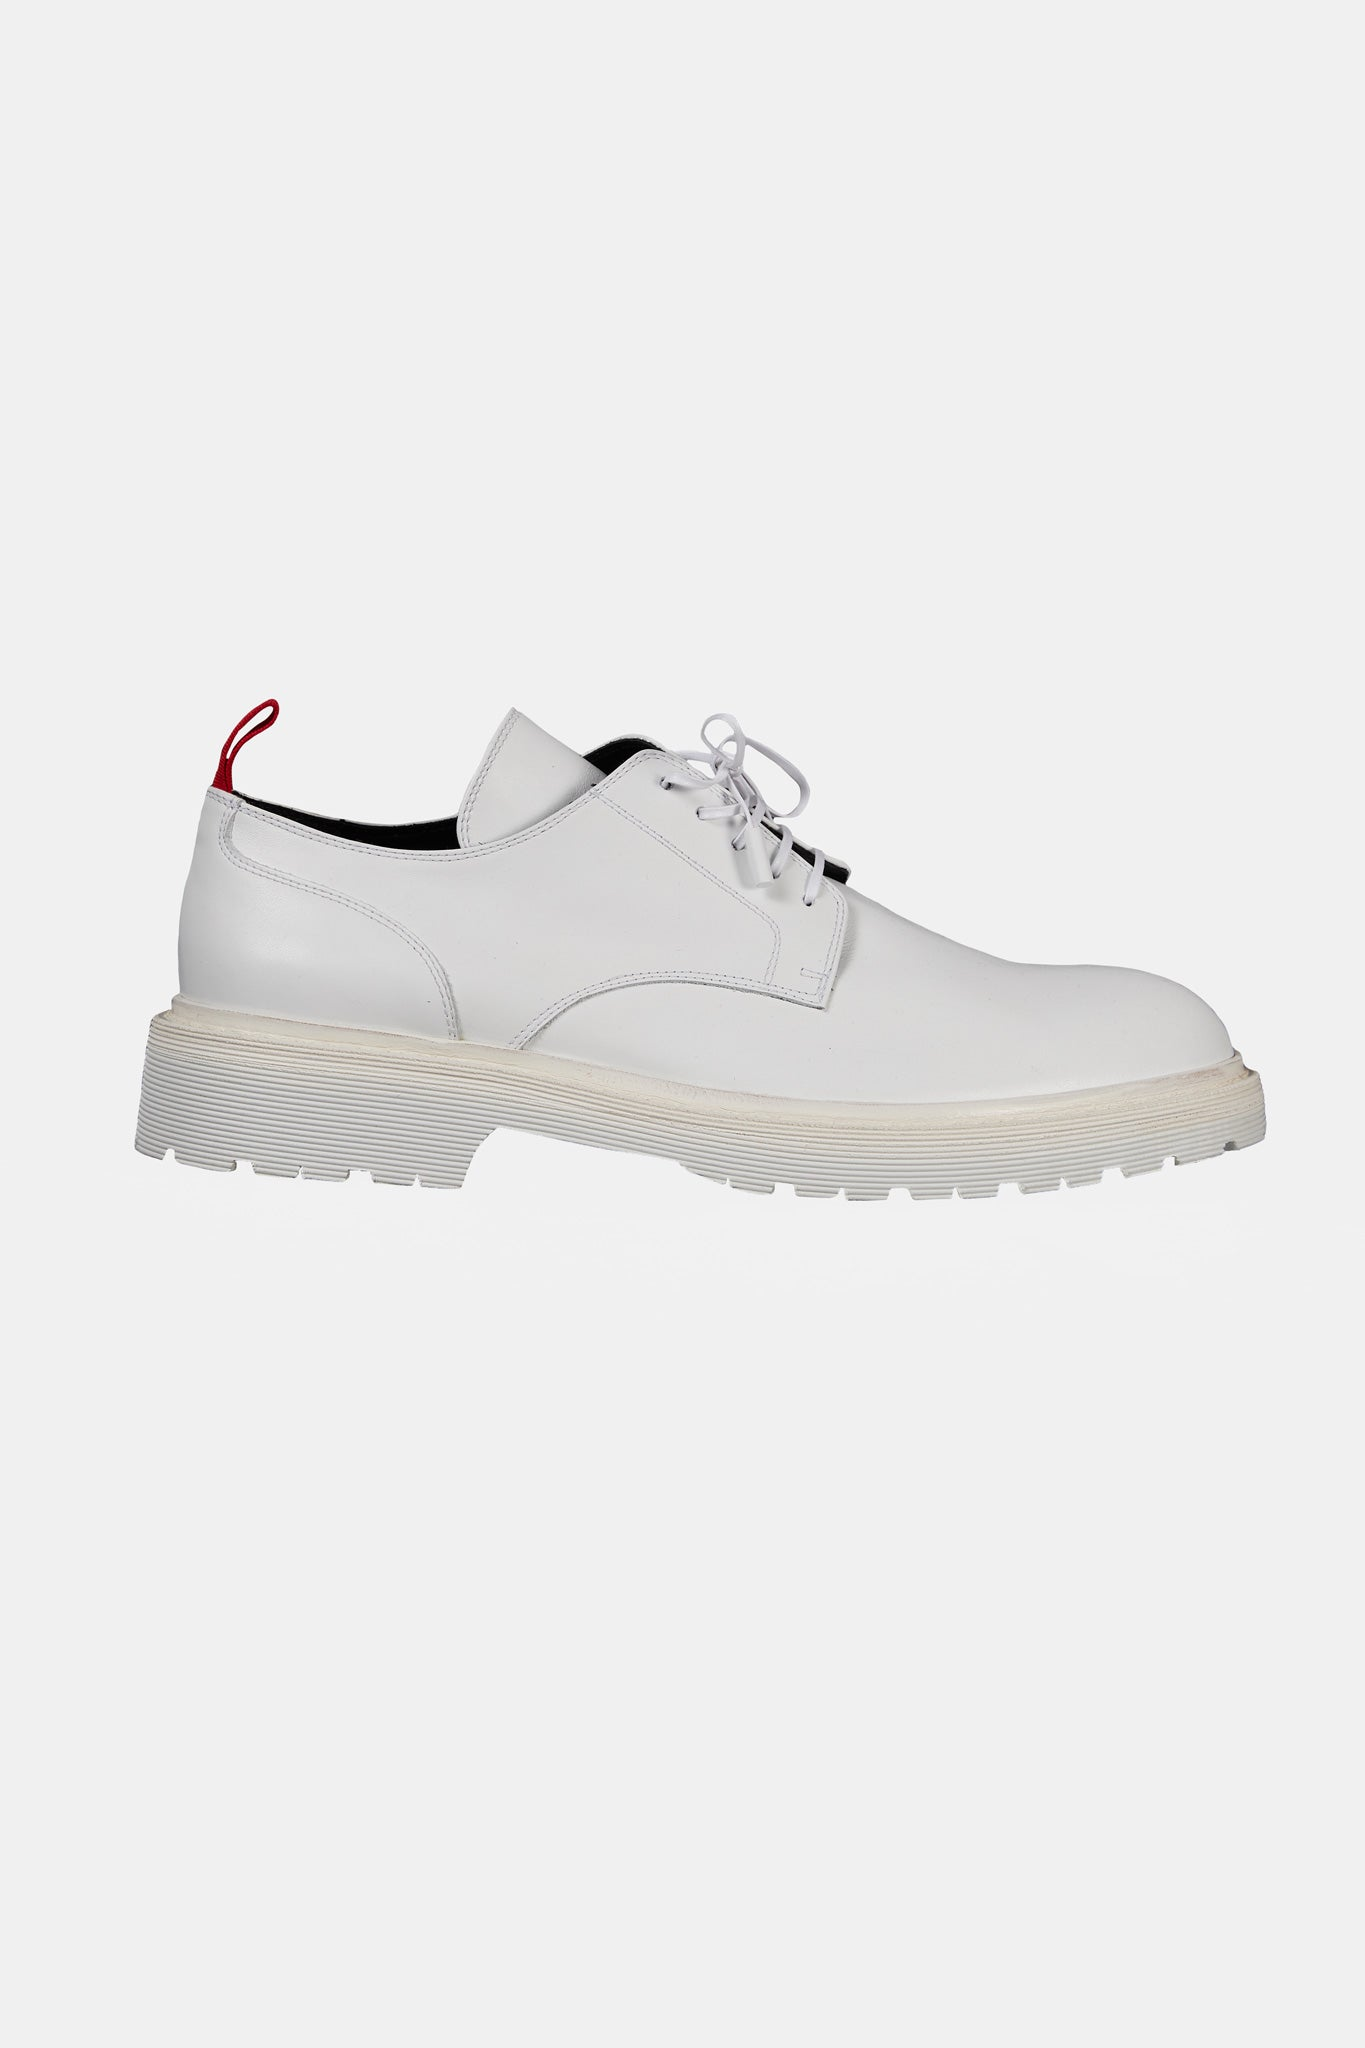 a140b1829 White Low Top Boots - 424